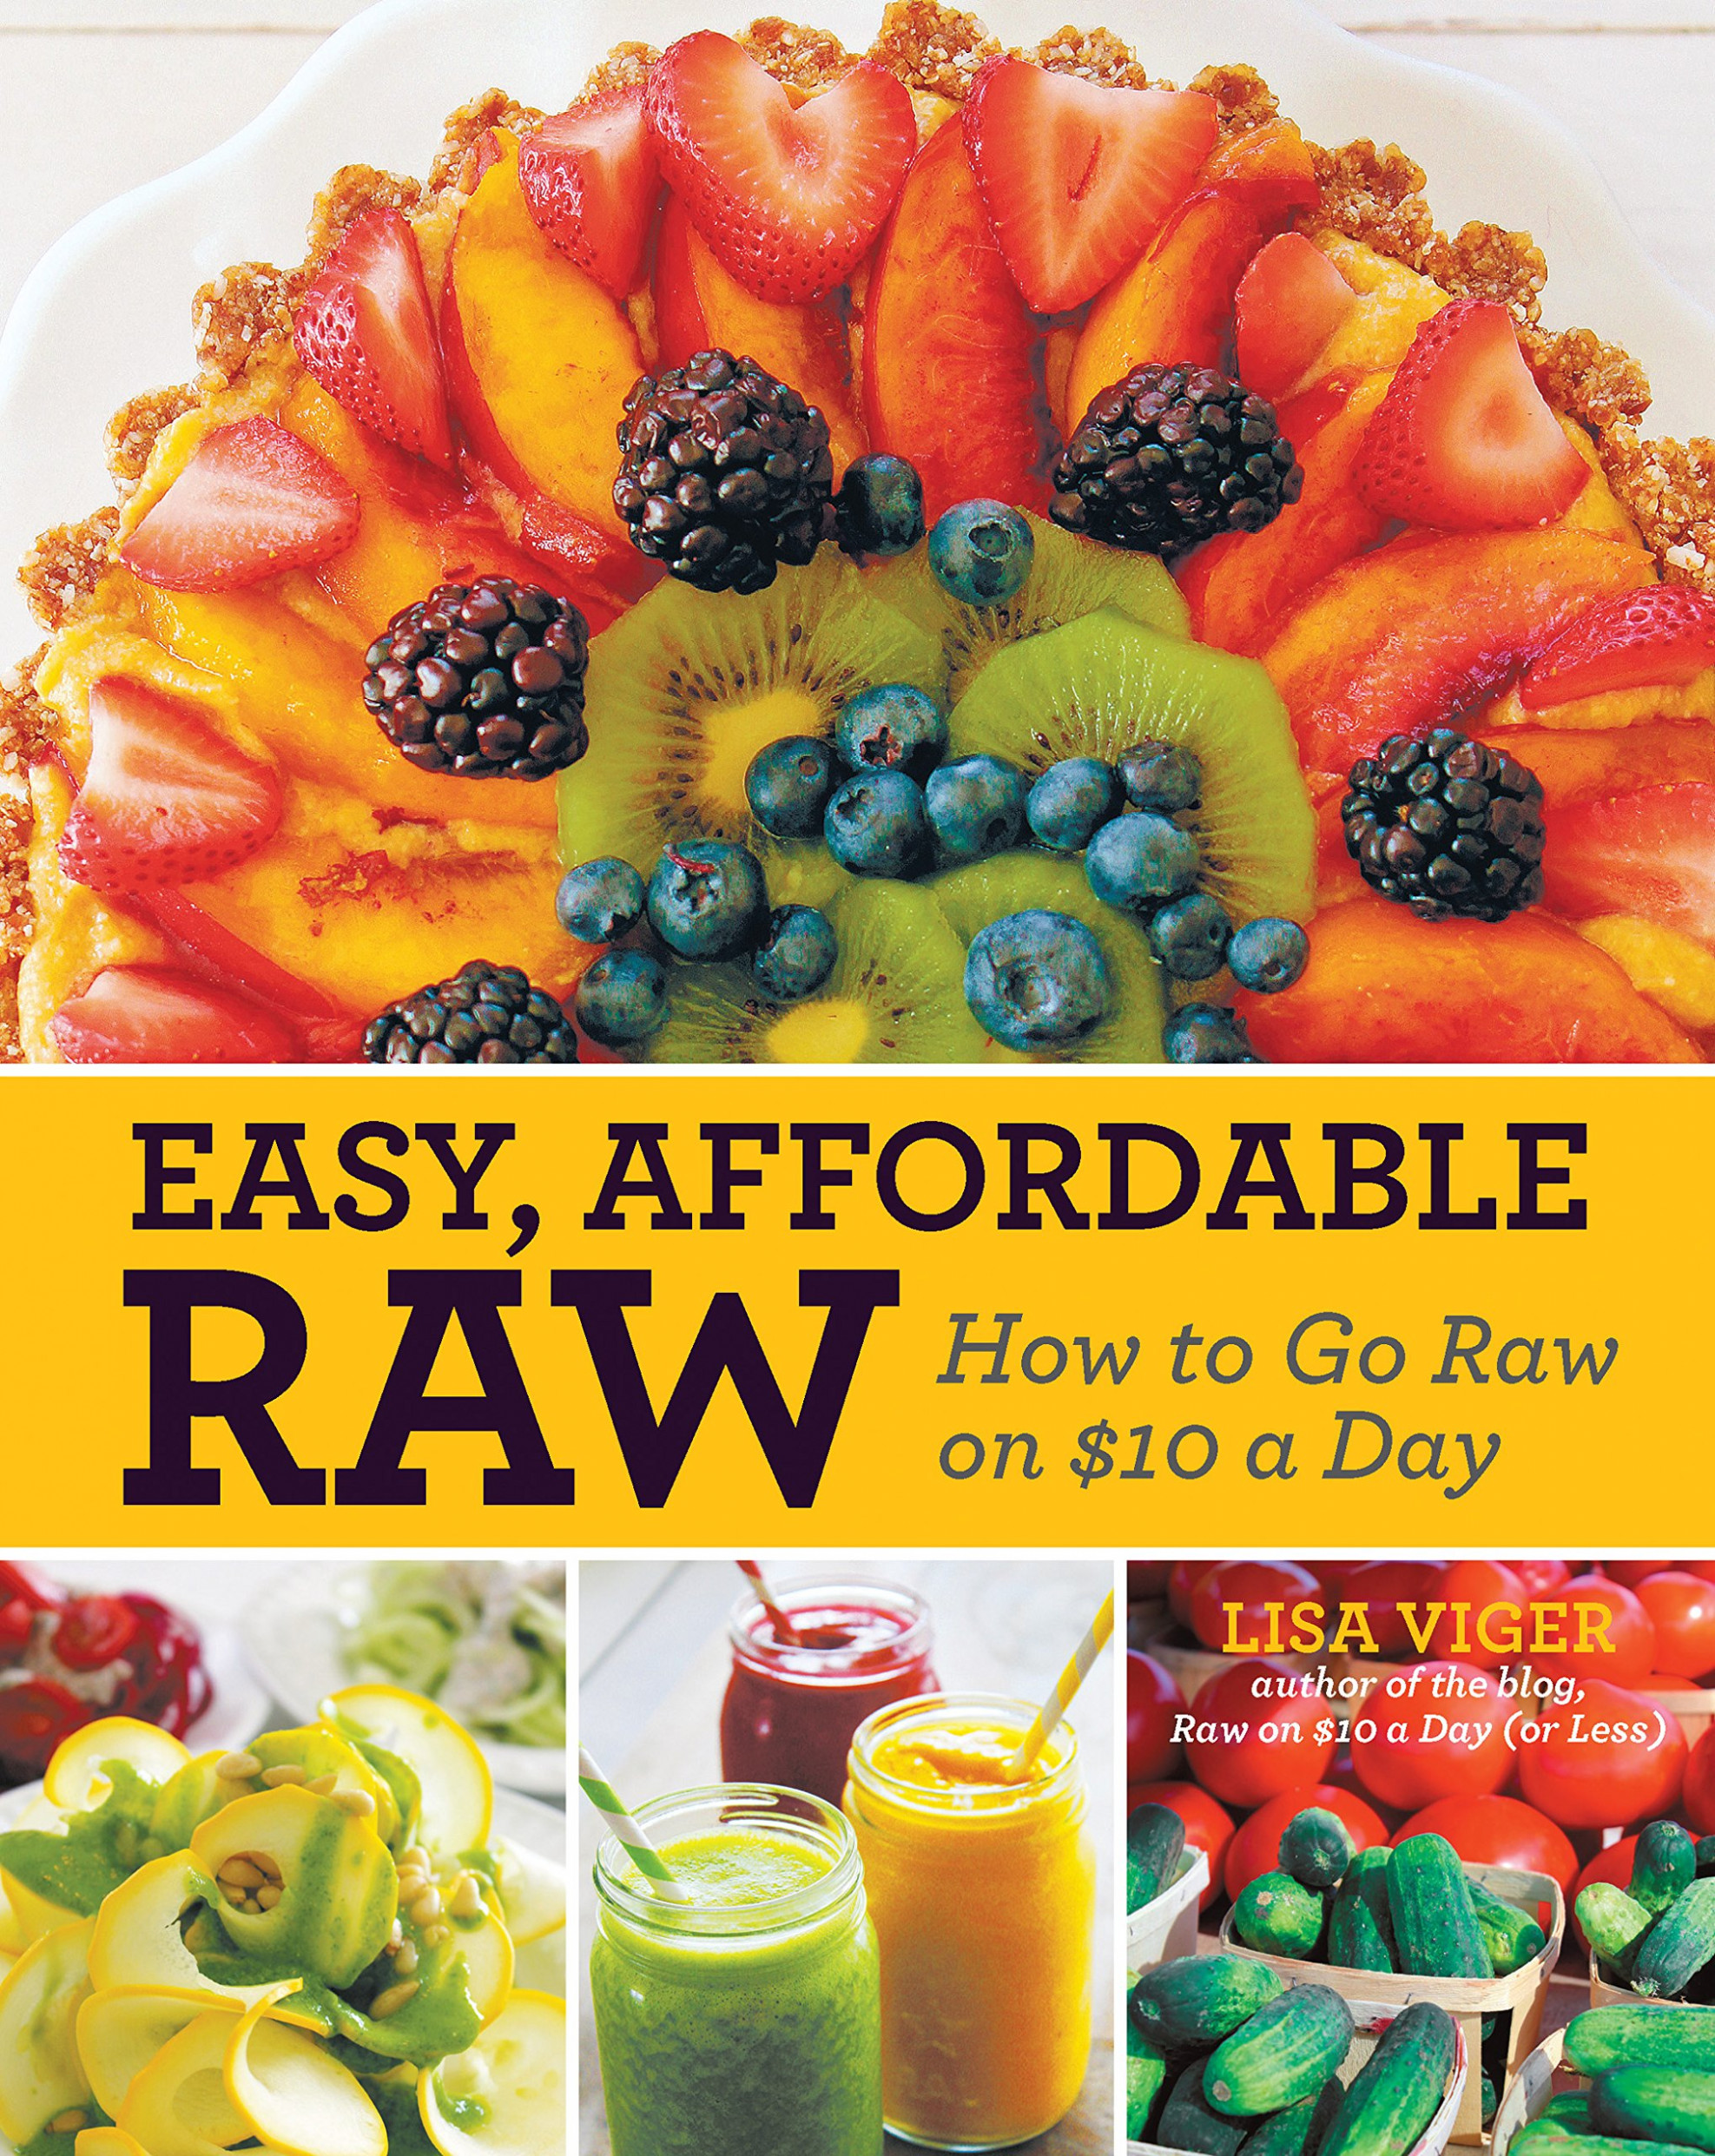 Top Five Raw Food Books for Beginners - The Best Raw Food Books - recipes raw food beginners